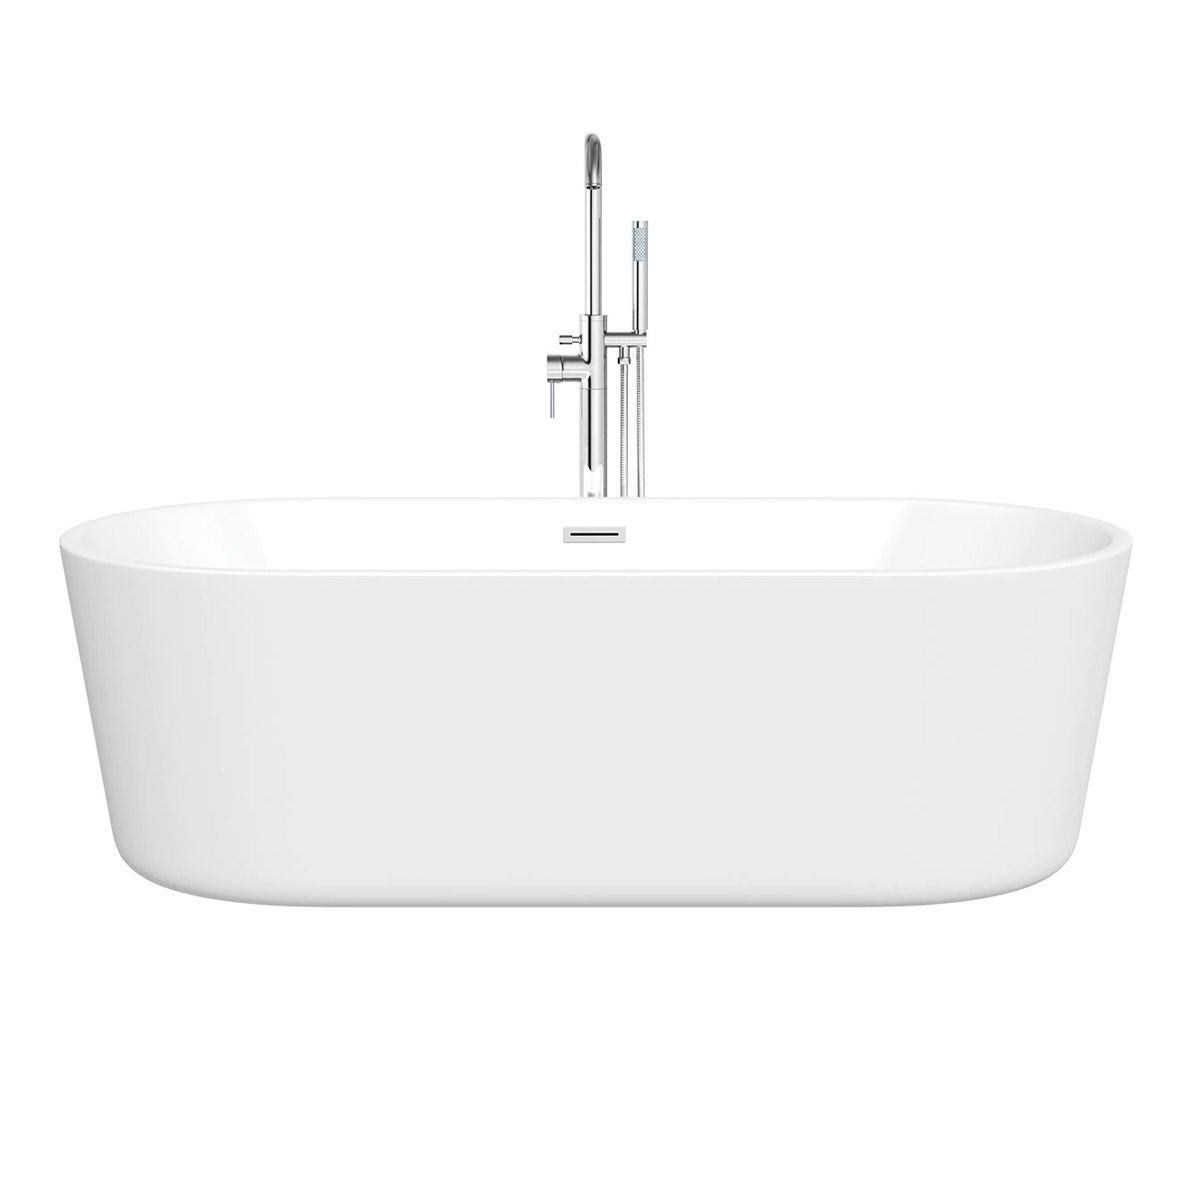 Mode tate freestanding bath 1780 x 800 for Small baths 1500